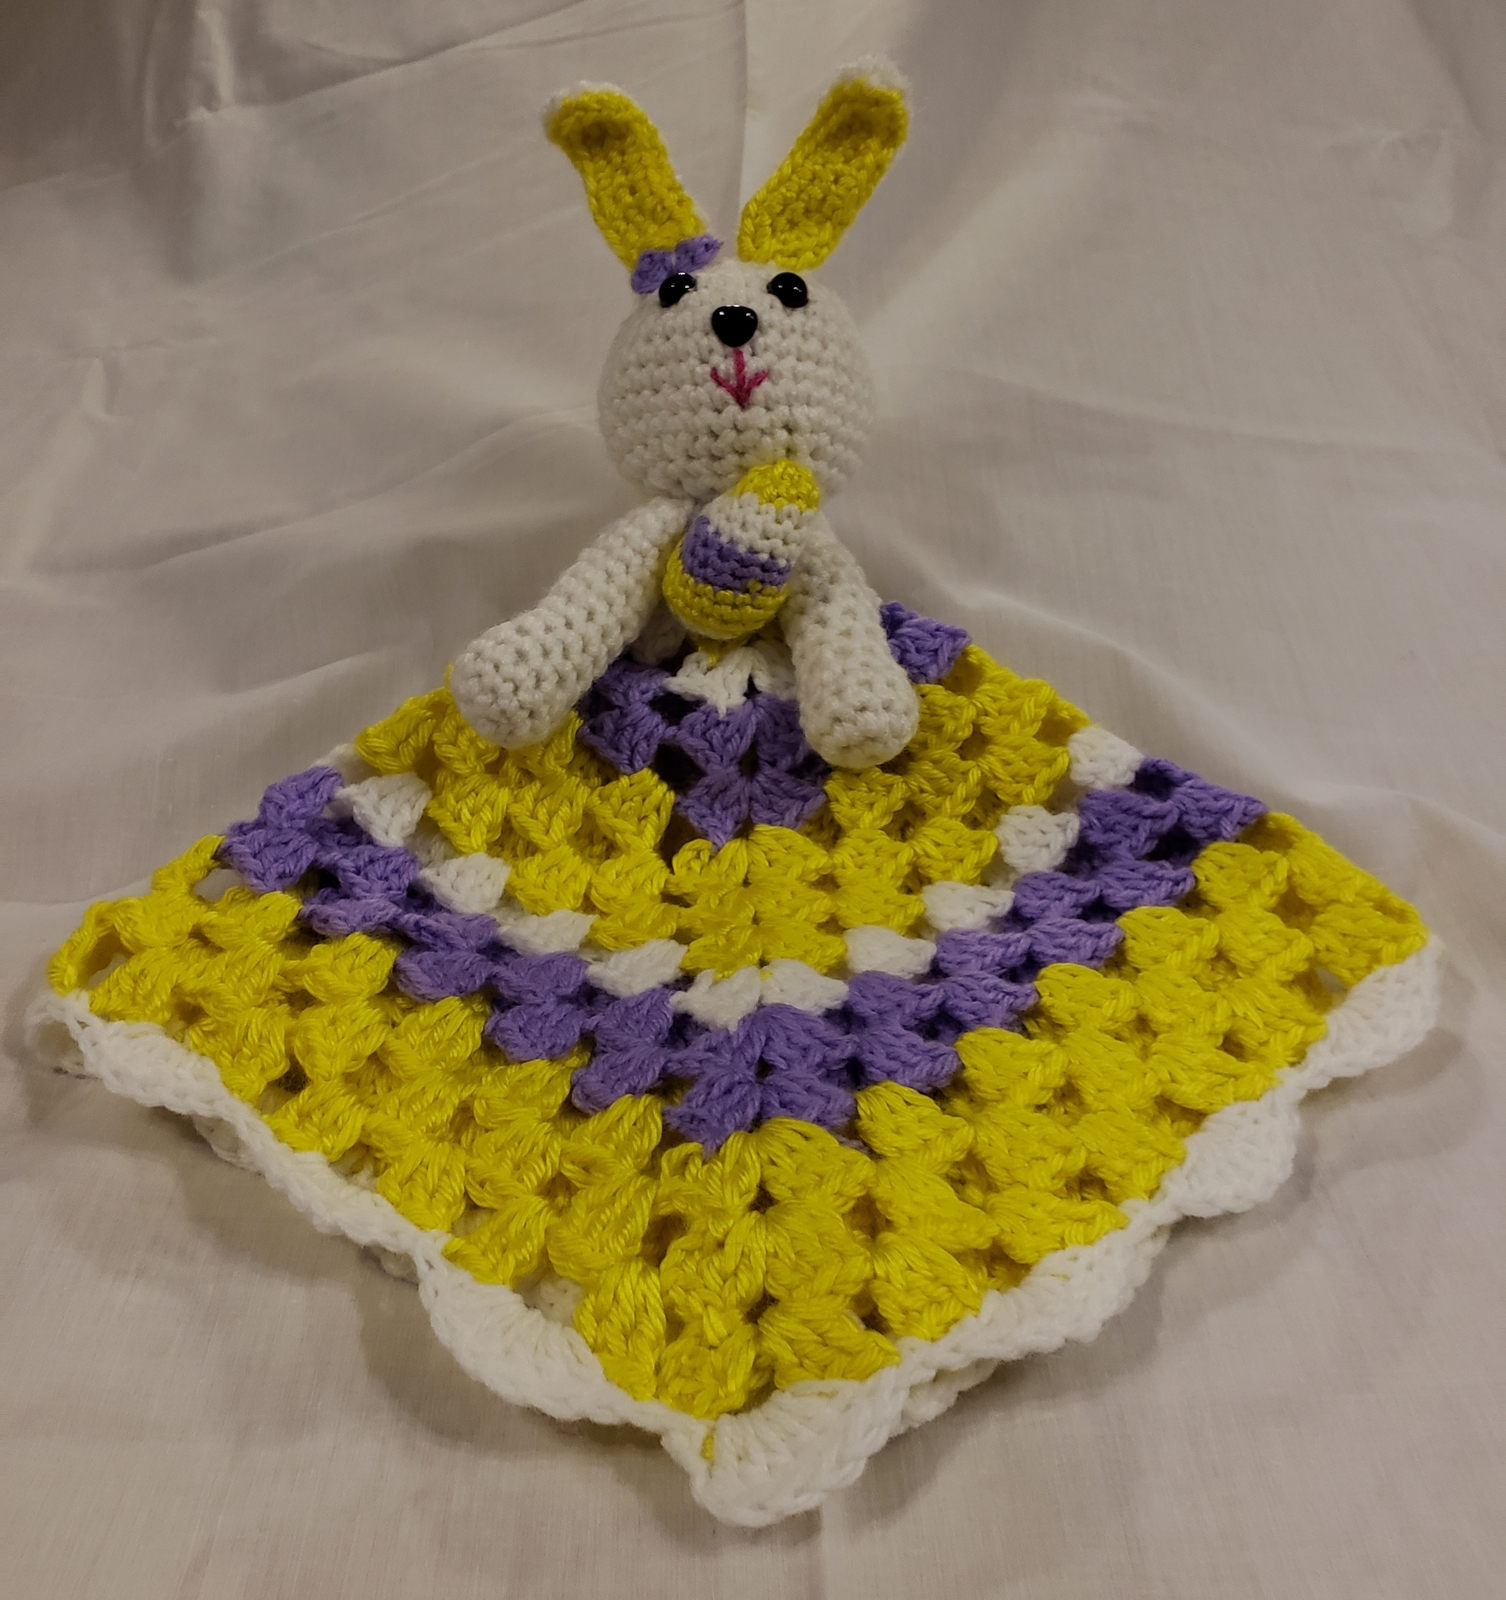 Handmade Crochet Bunny Lovey Blanket  (Purple/Yellow)